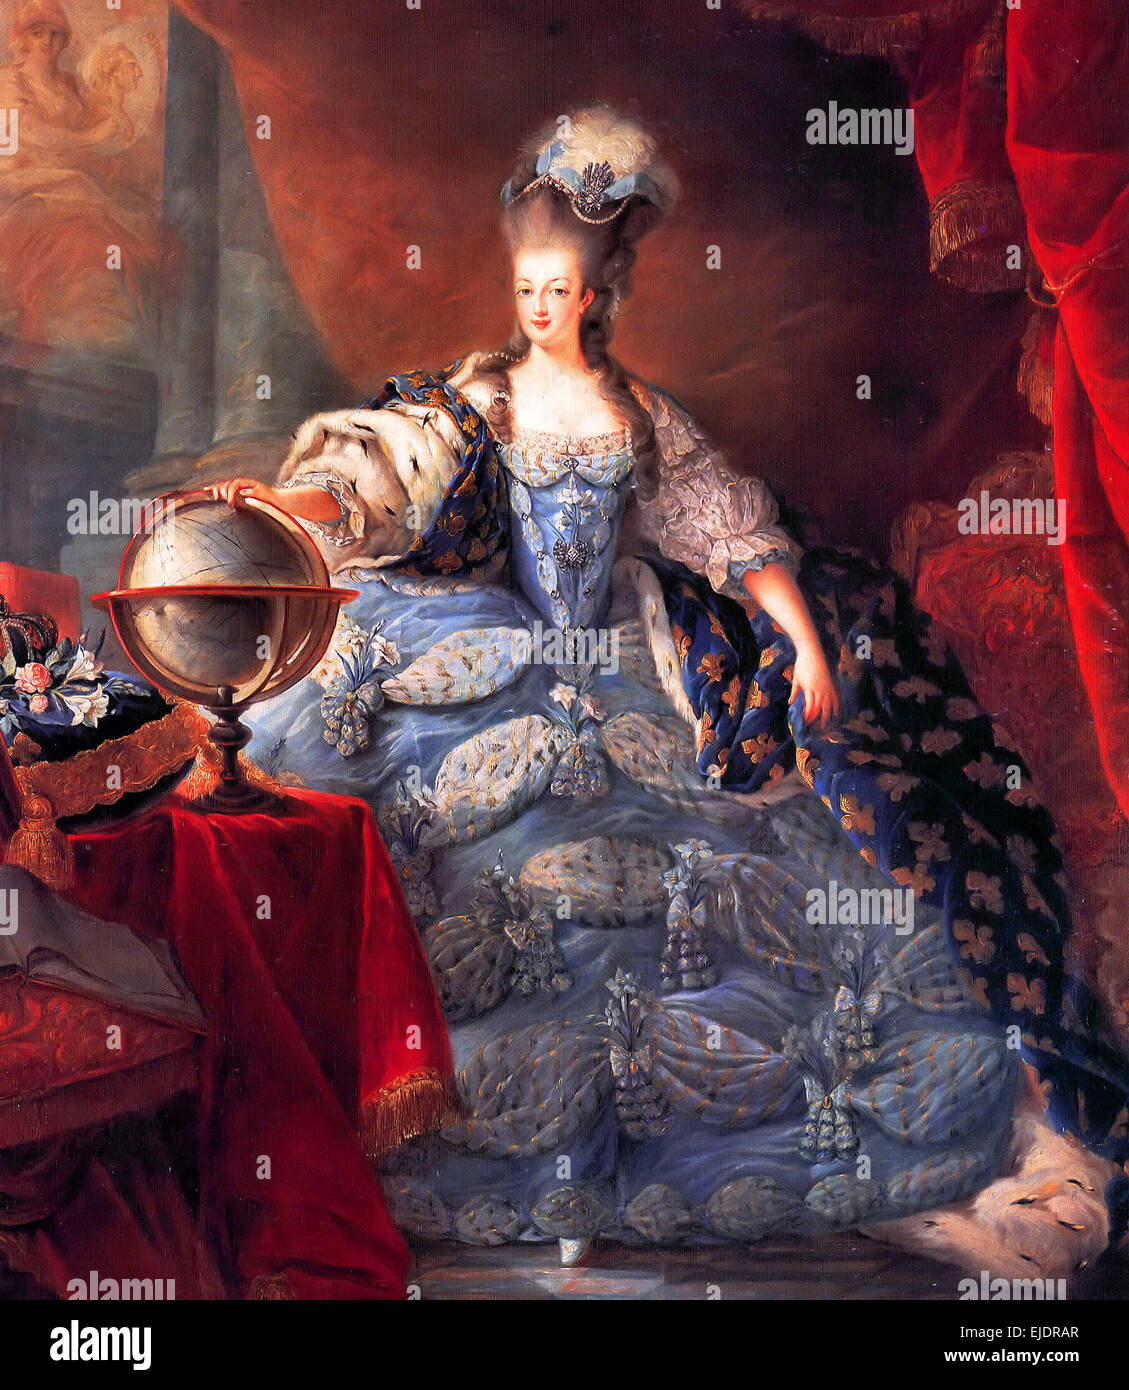 Marie Antoinette, Queen of France, in coronation robes - Stock Image